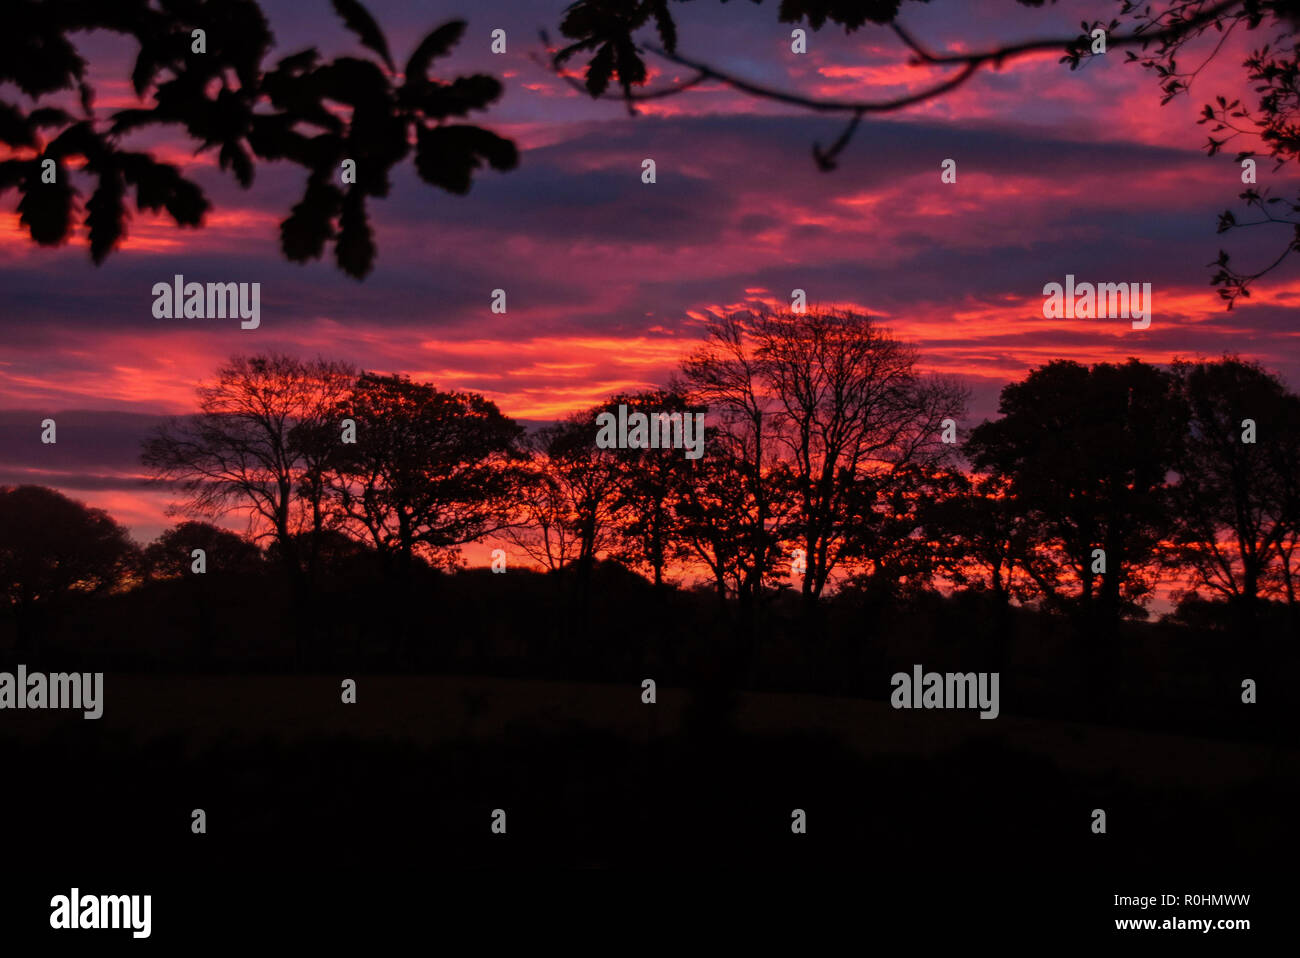 Llwyncelyn, Aberaeron West Wales 5th Nov 2018. UK Weather: Lovely sunrise this morning in Llwyncelyn. Credit: andrew chittock/Alamy Live News - Stock Image